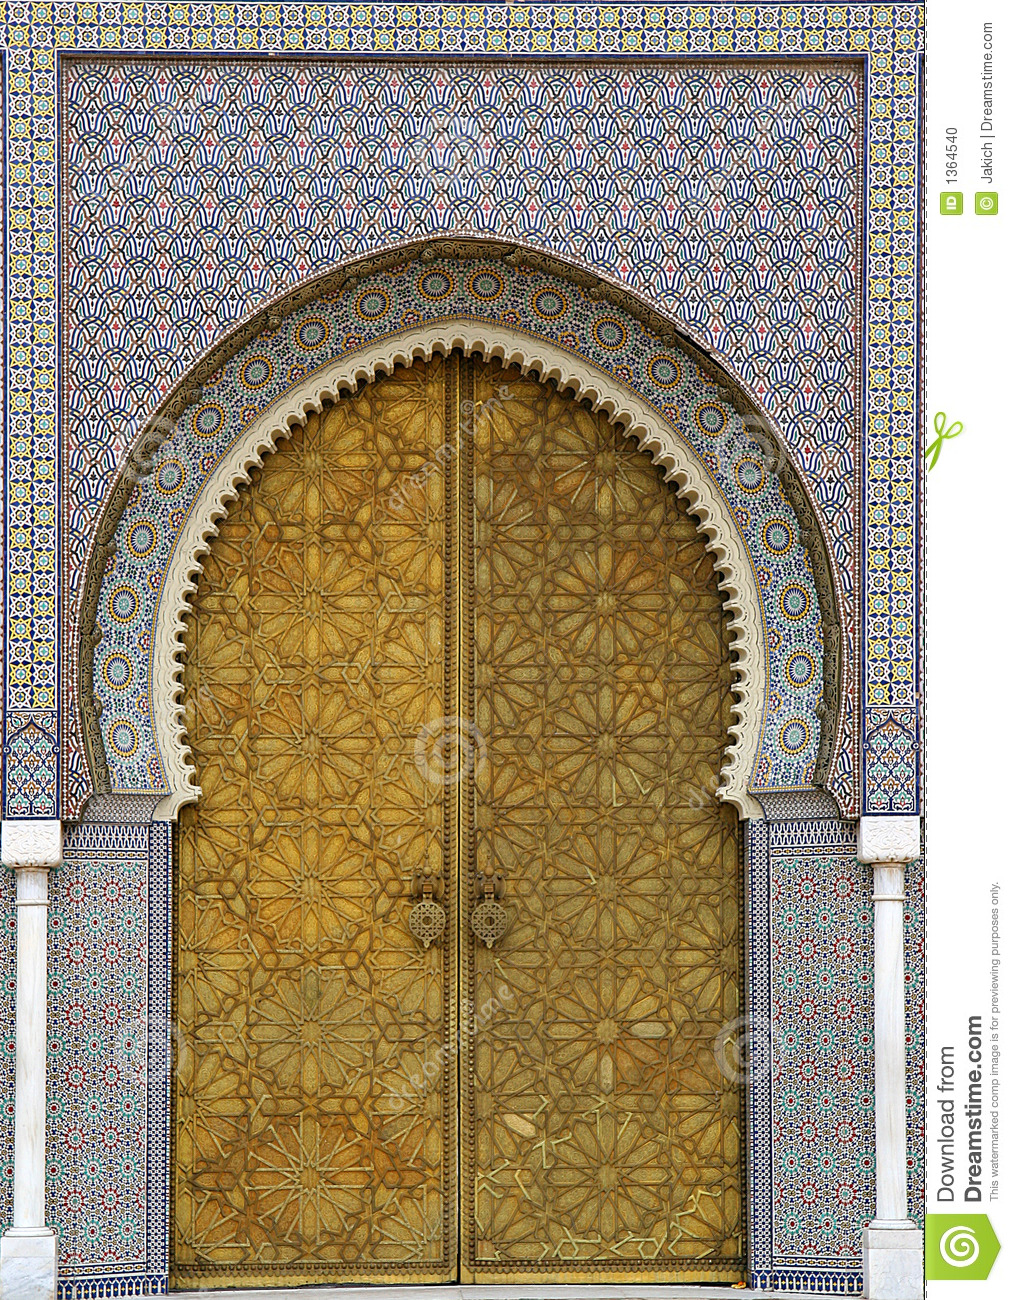 Moroccan Doorway Arch  for Moroccan Archway  45gtk